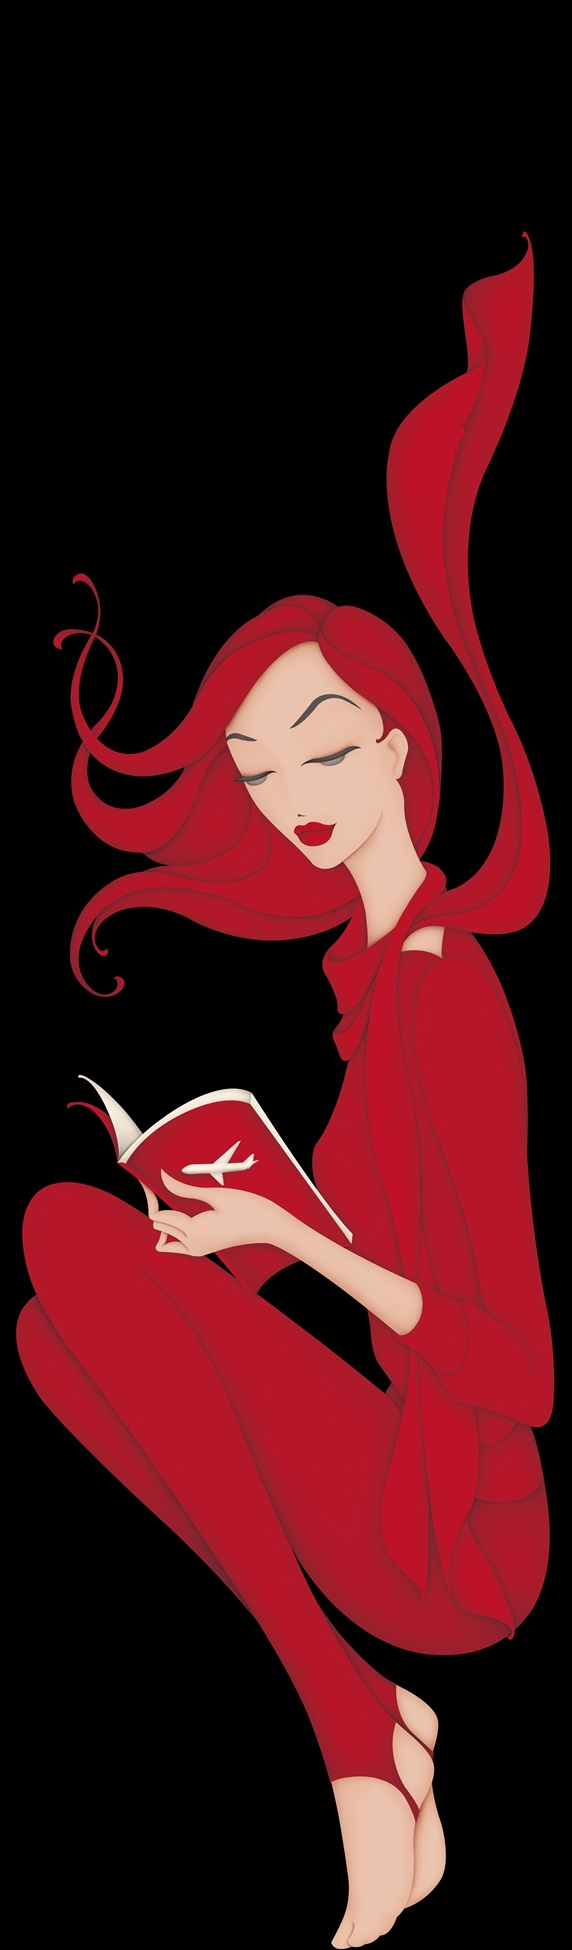 Redhead young woman reading